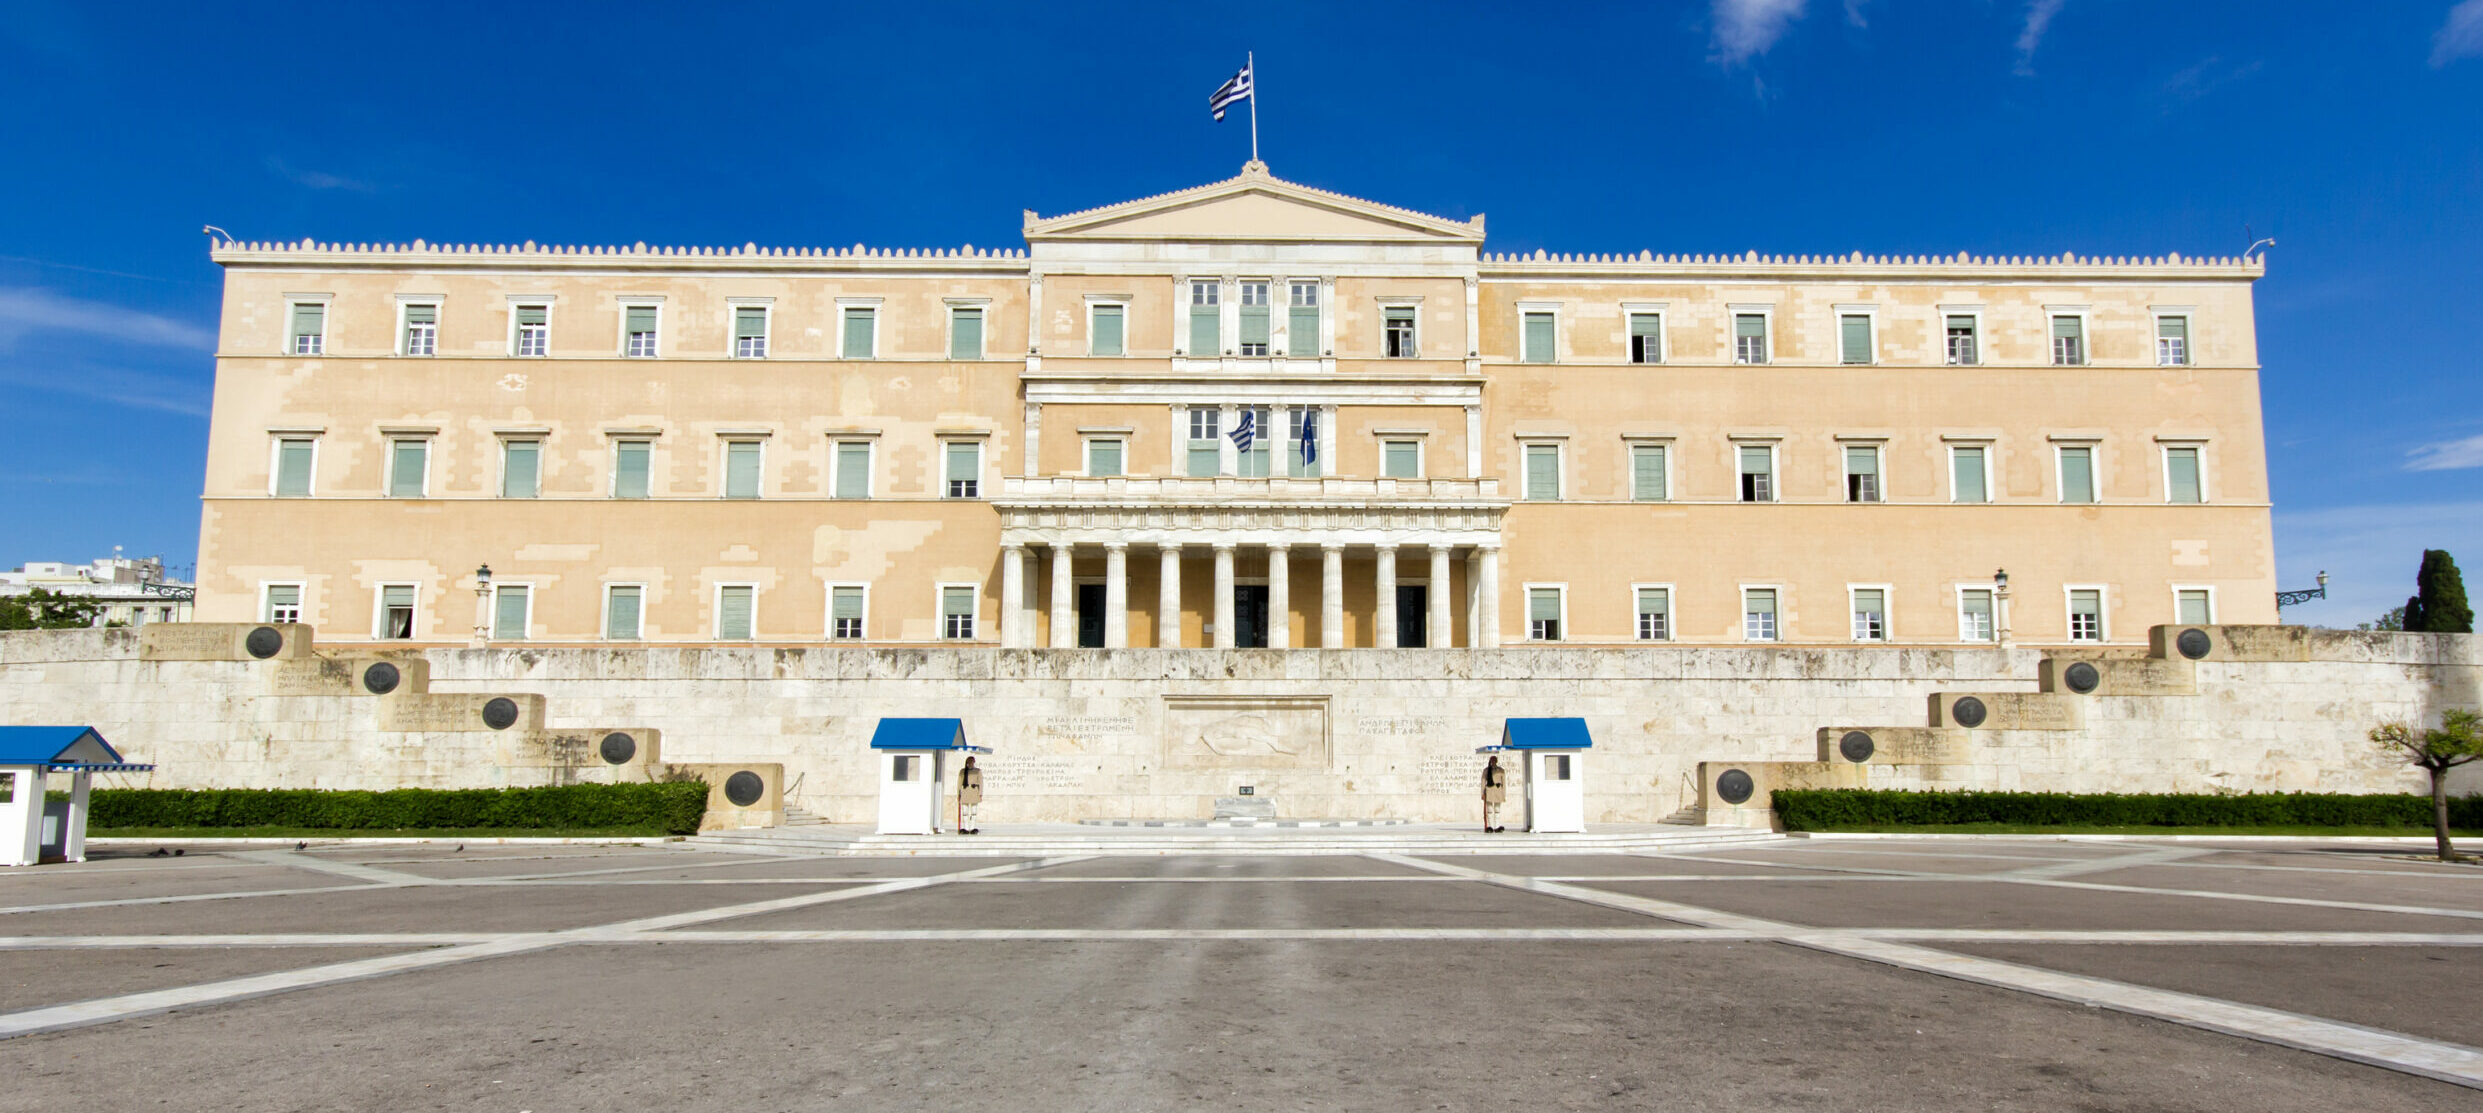 Old Athens: When Syntagma Square was a large field